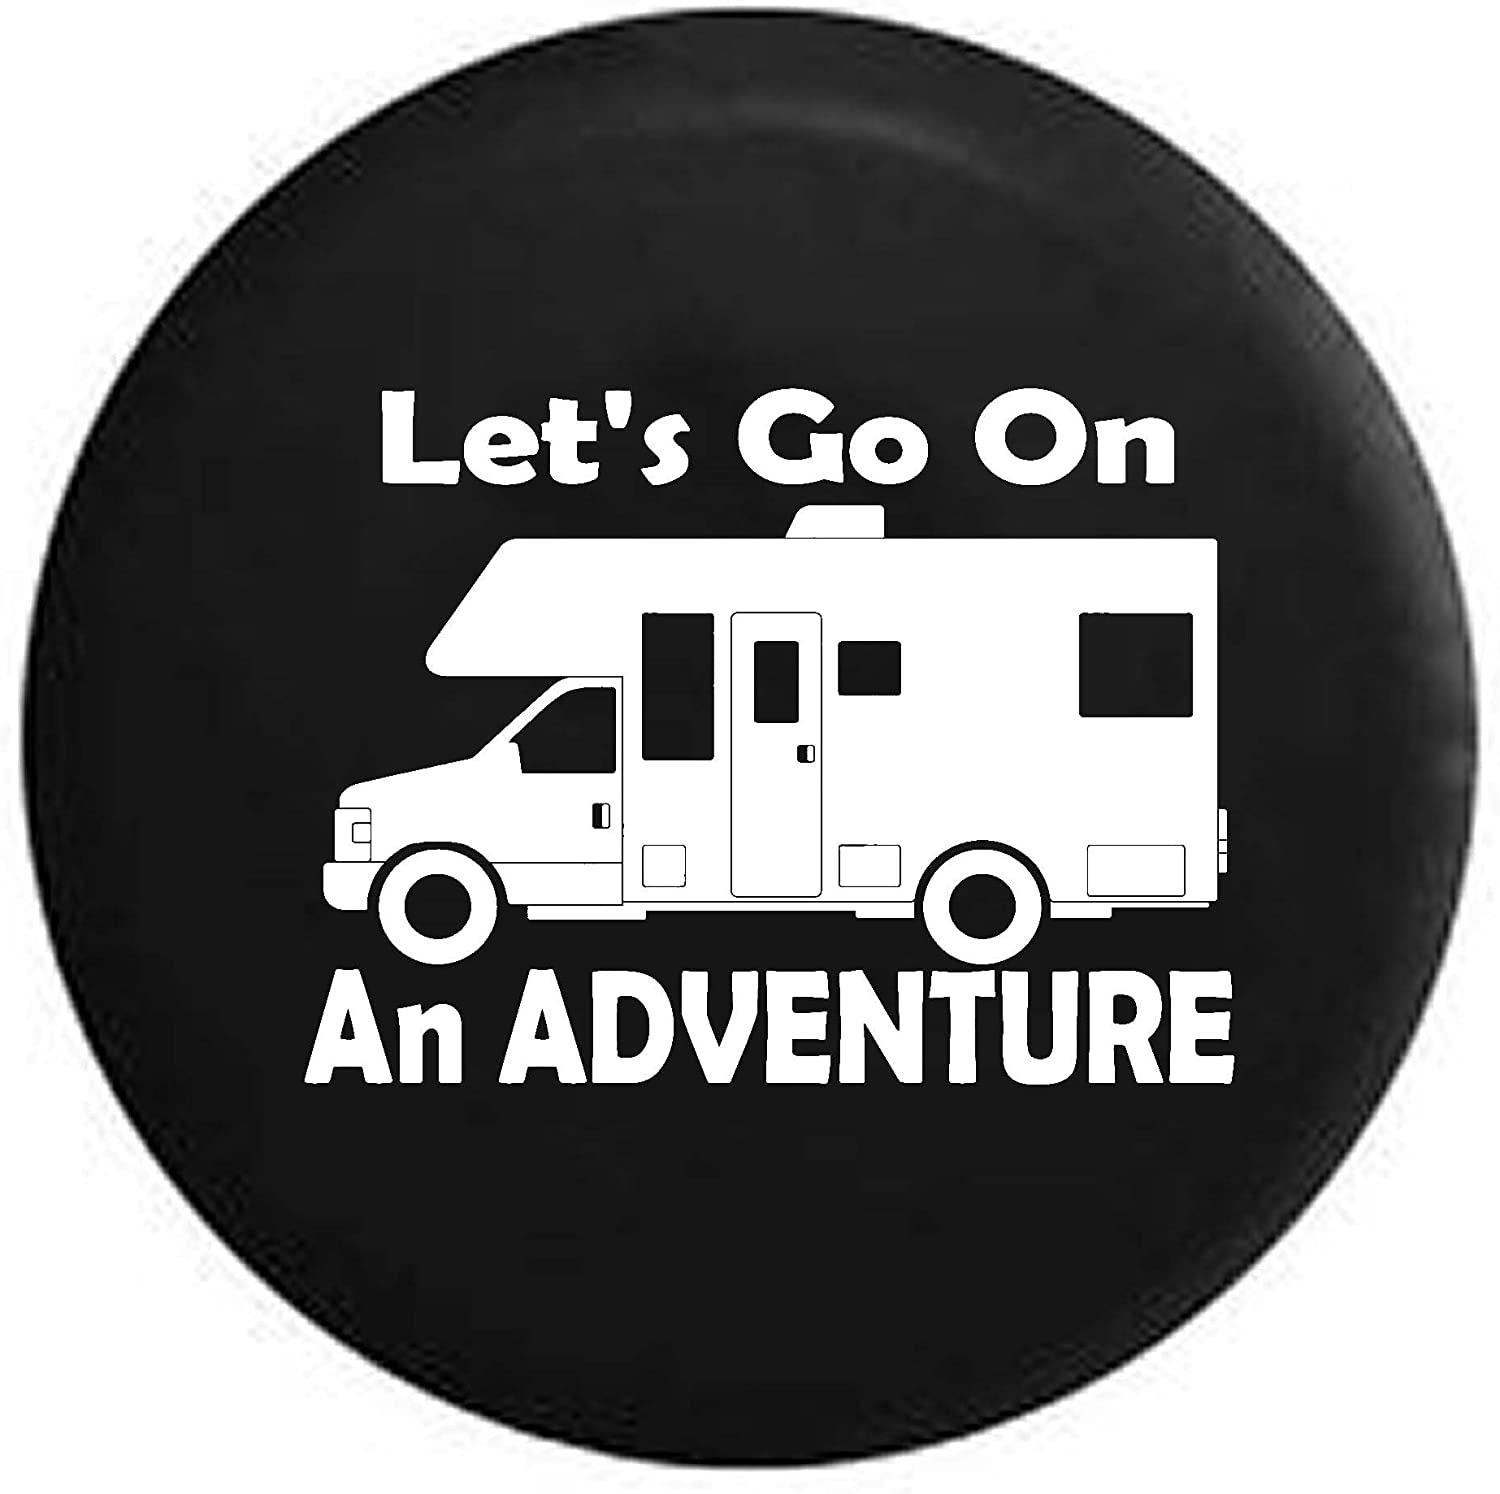 Lets Go on an Adventure RV Motorhome Camping Travel Spare Tire Cover OEM Vinyl Black 31 in Pike Outdoors Tan